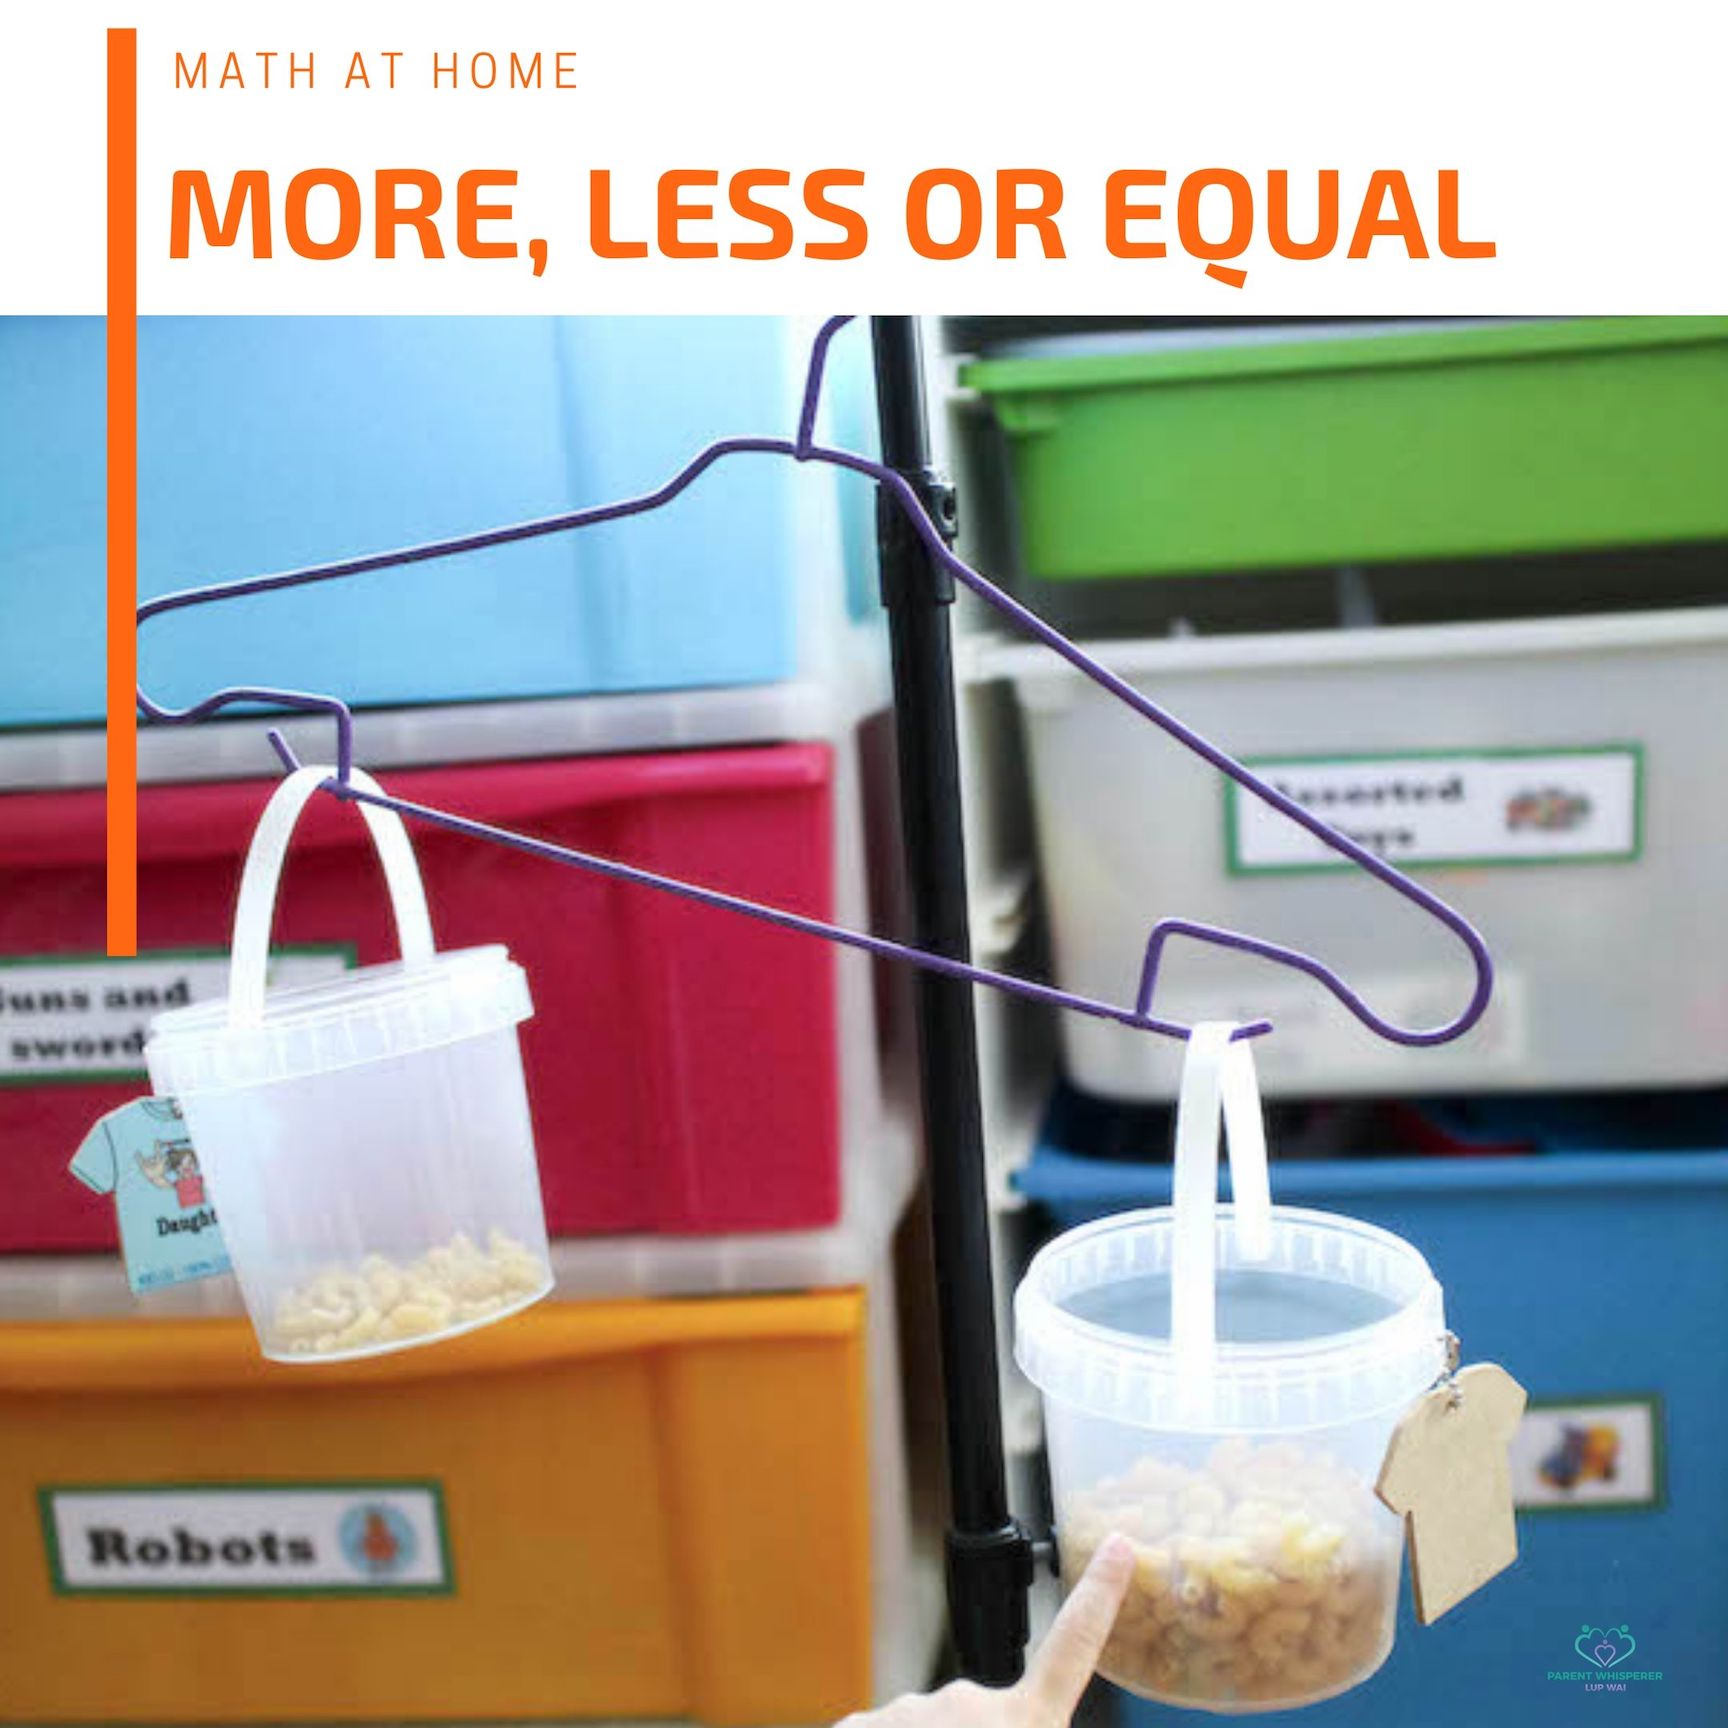 Math: More, Less or Equal